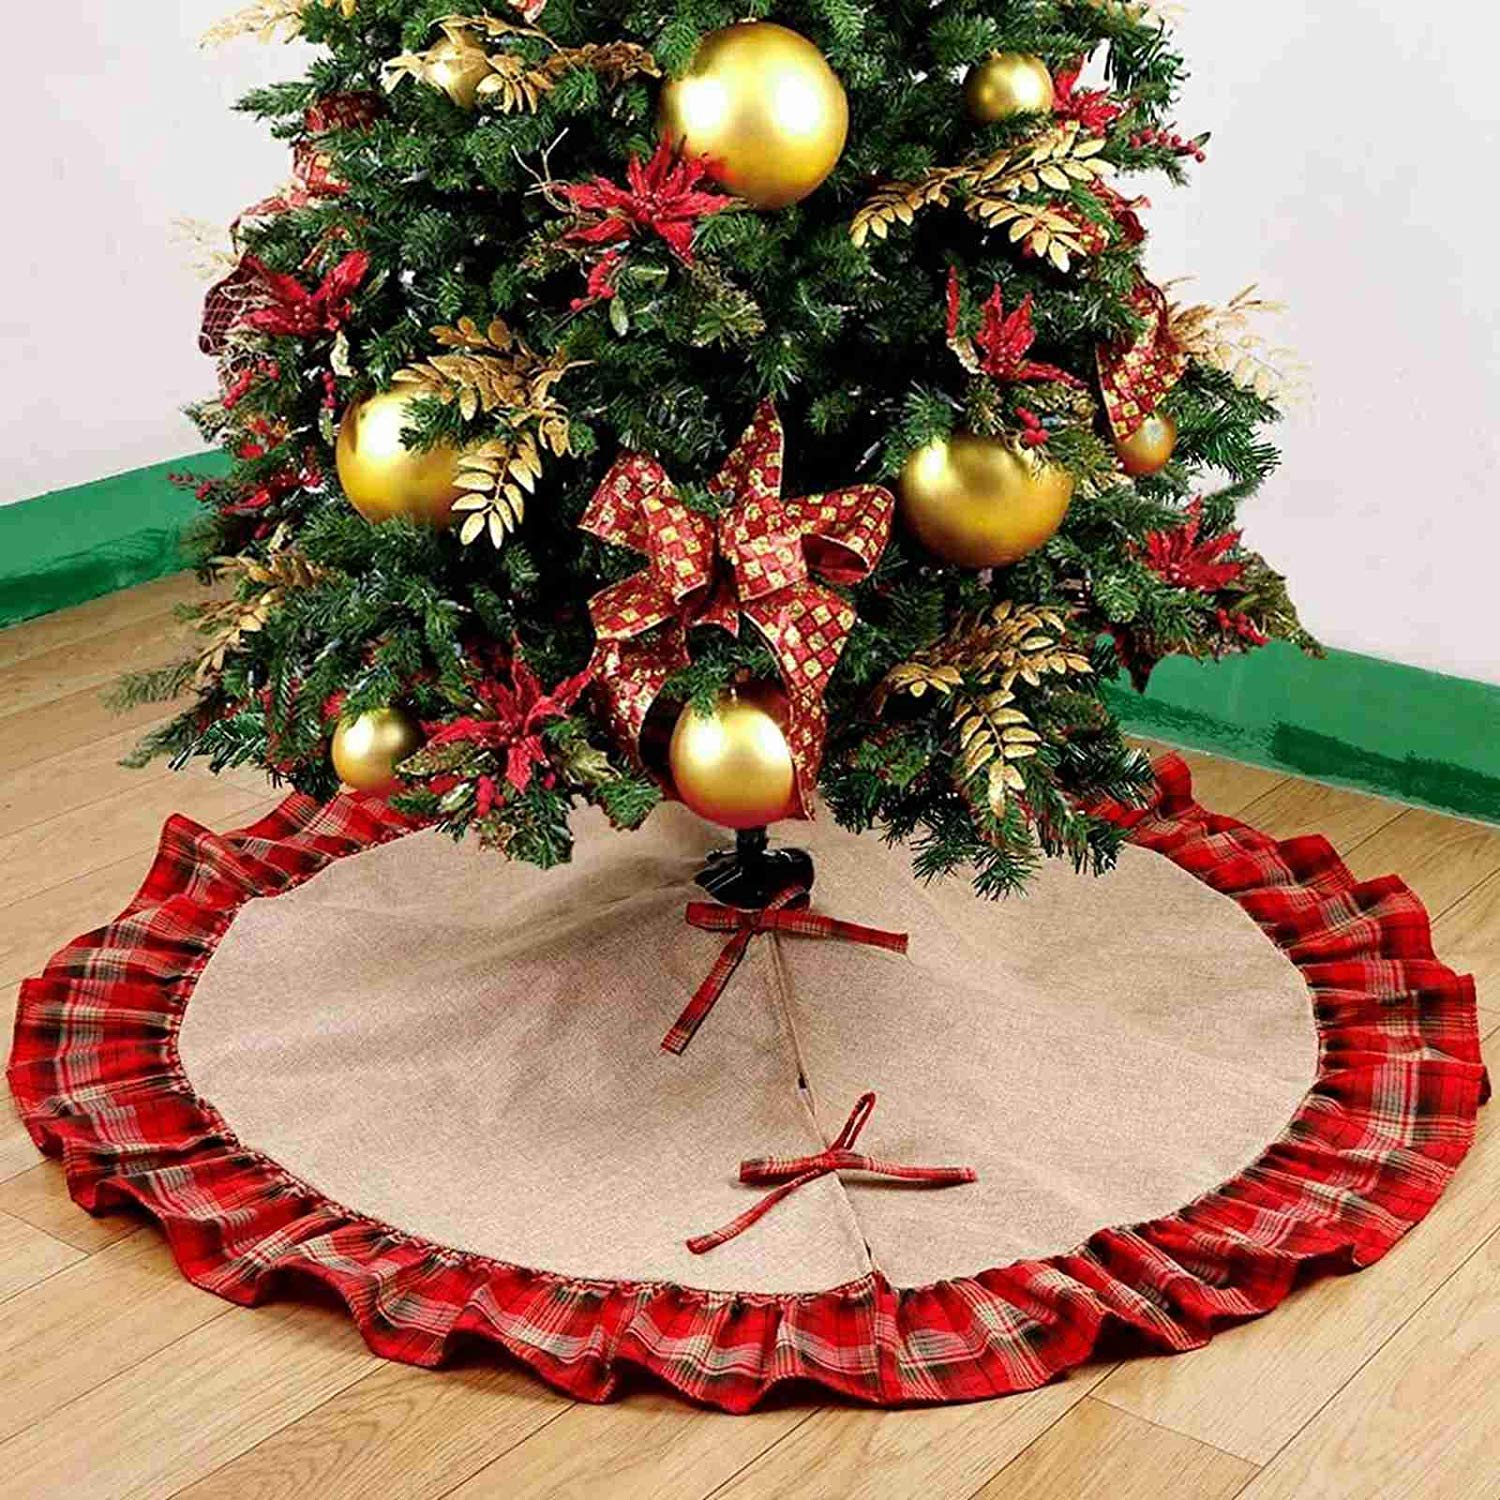 Sea Plan 48 Inch Christmas Tree Skirt Linen Round Plaid Ruffled Pleated Skirt Christmas Party Holiday Decorations